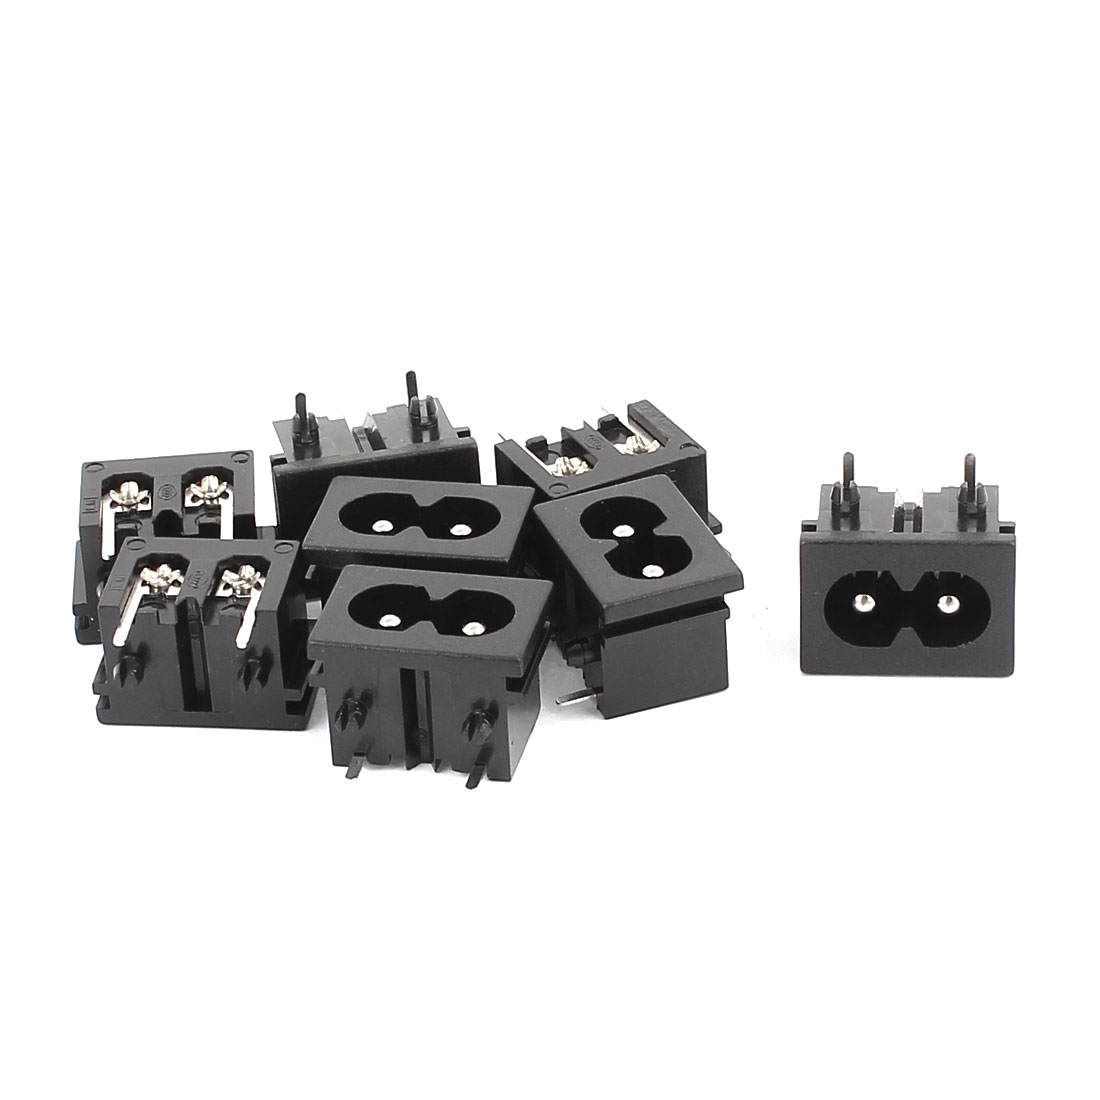 IEC320 C8 Male Power Adapter Connector Black AC 250V 2.5A 8 Pcs